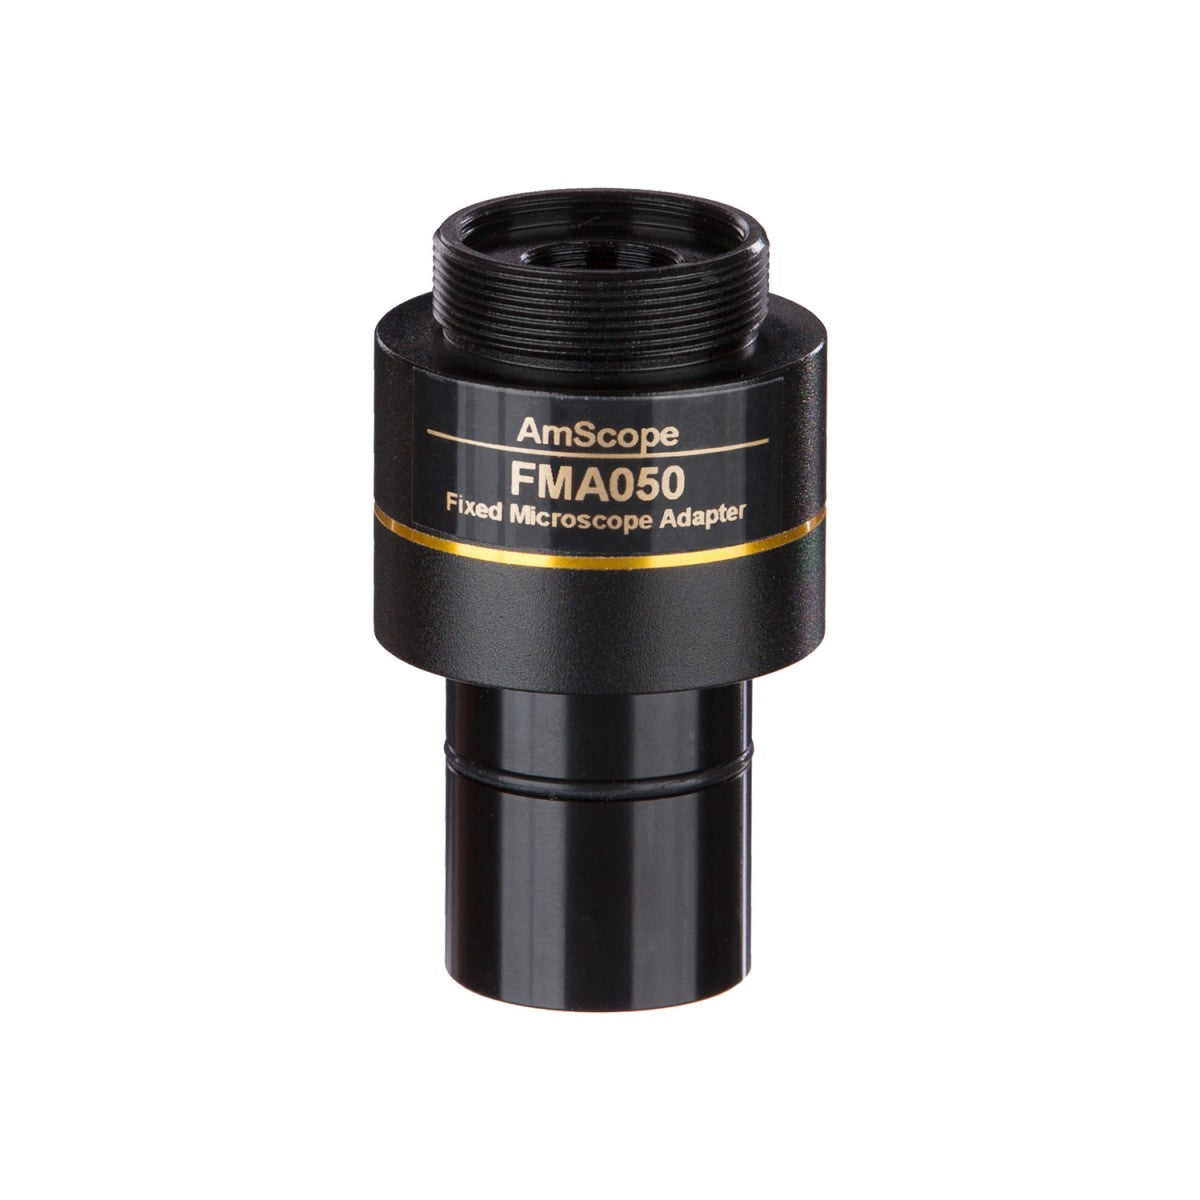 0.5x Adapter For Cameras